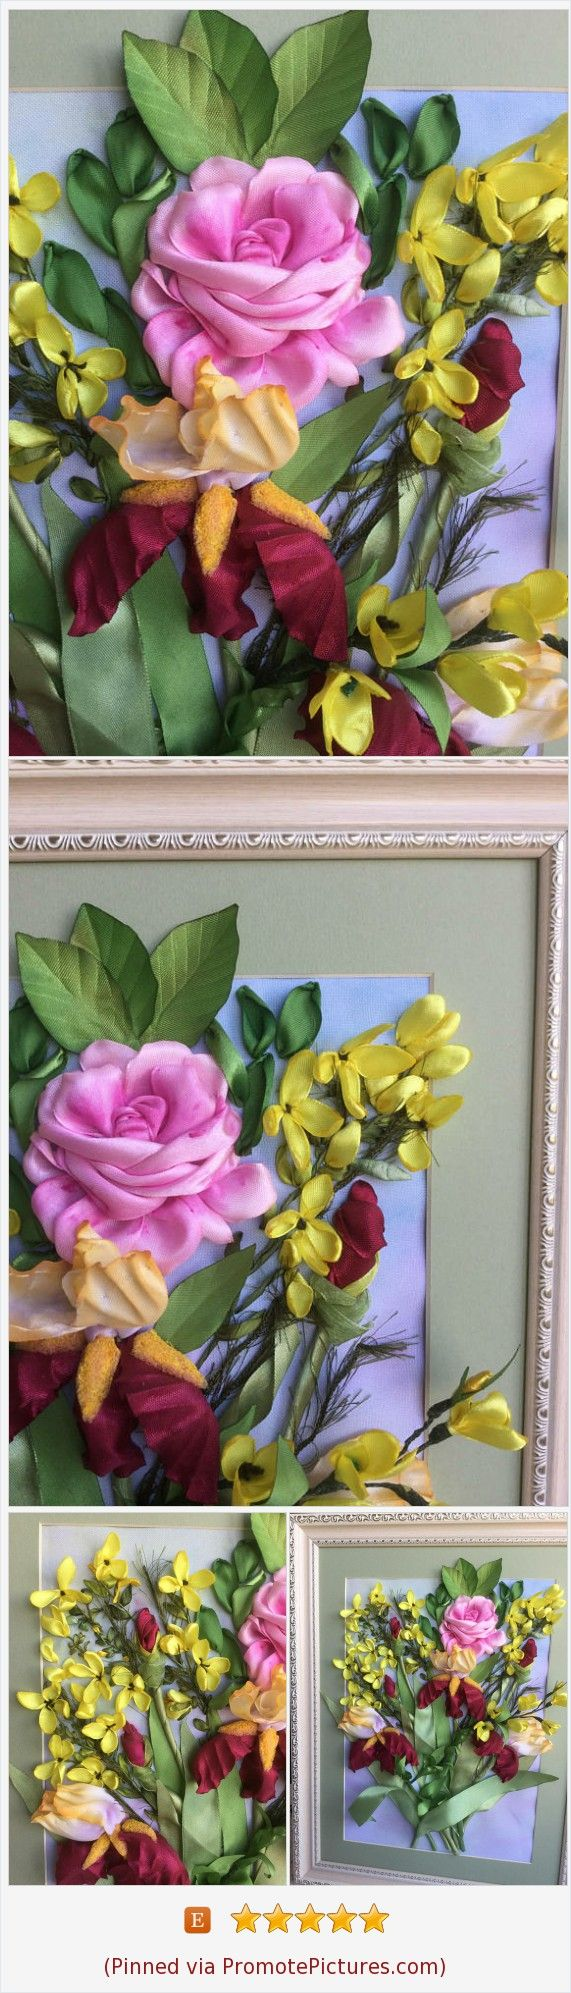 Ribbons Embroidery flowers irises Embroidered pictures Memorable gift Luxury picture in house 3D Effect picture Elite picture Original art Style interior Bohho chic https://www.etsy.com/LucysRibbonCreations/listing/559005881/ribbons-embroidery-flowers-irises?ref=shop_home_active_29  (Pinned using https://PromotePictures.com)